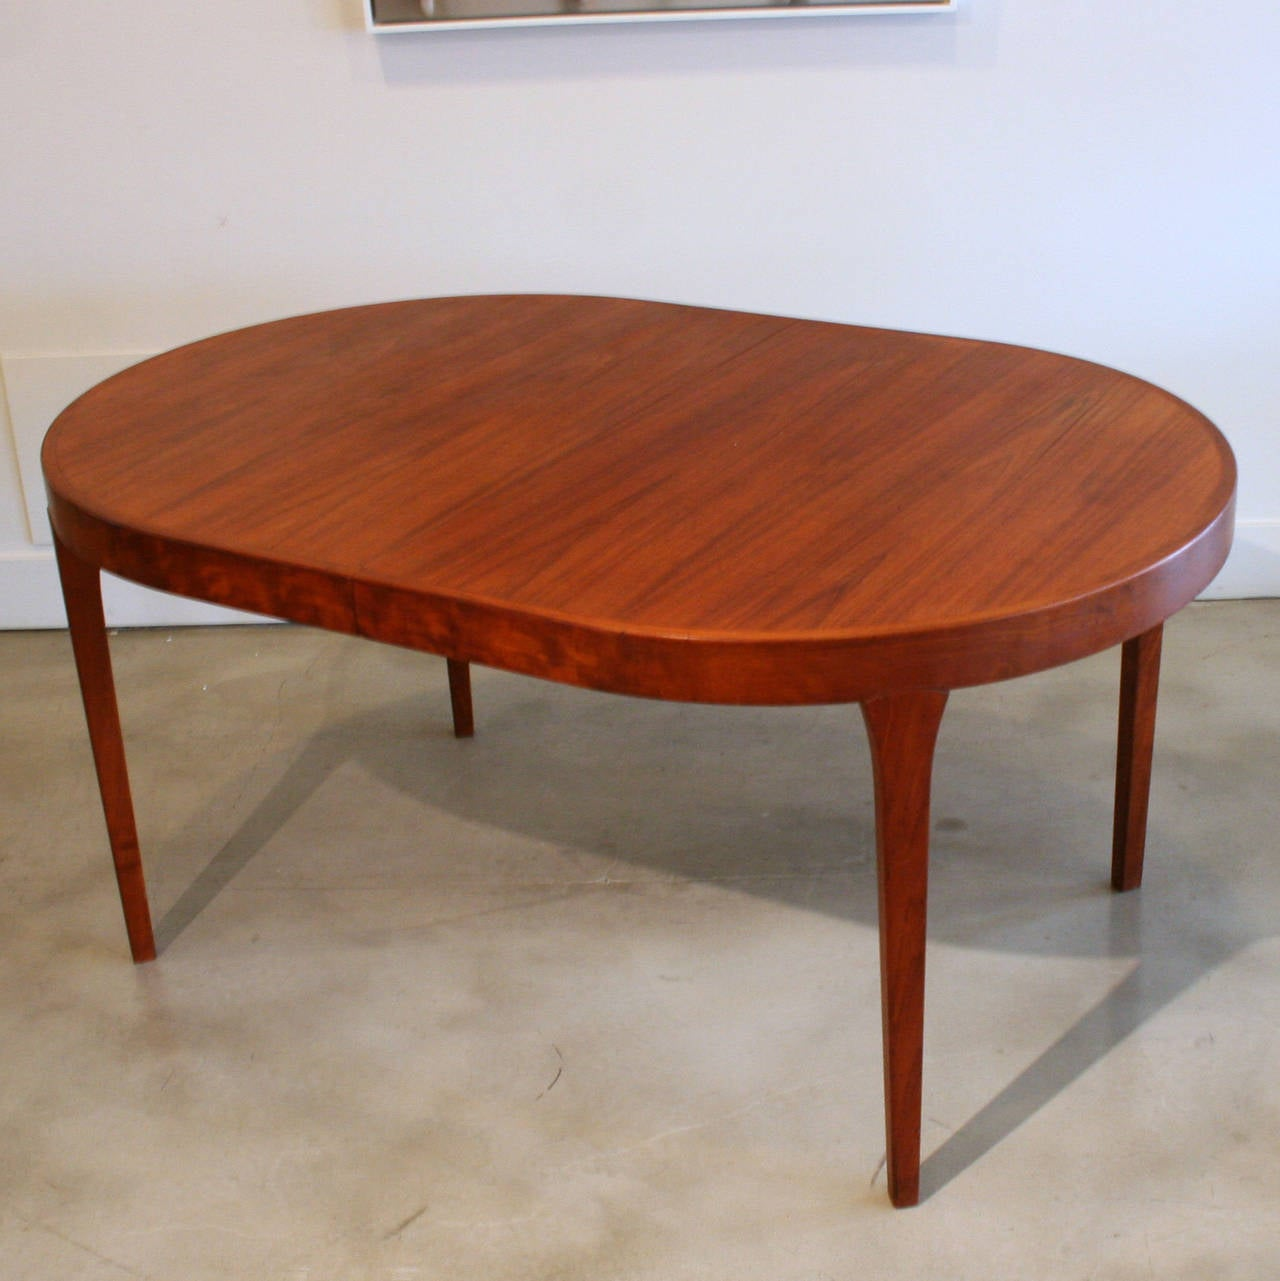 Vintage Danish Oval Teak Dining Table At 1stdibs